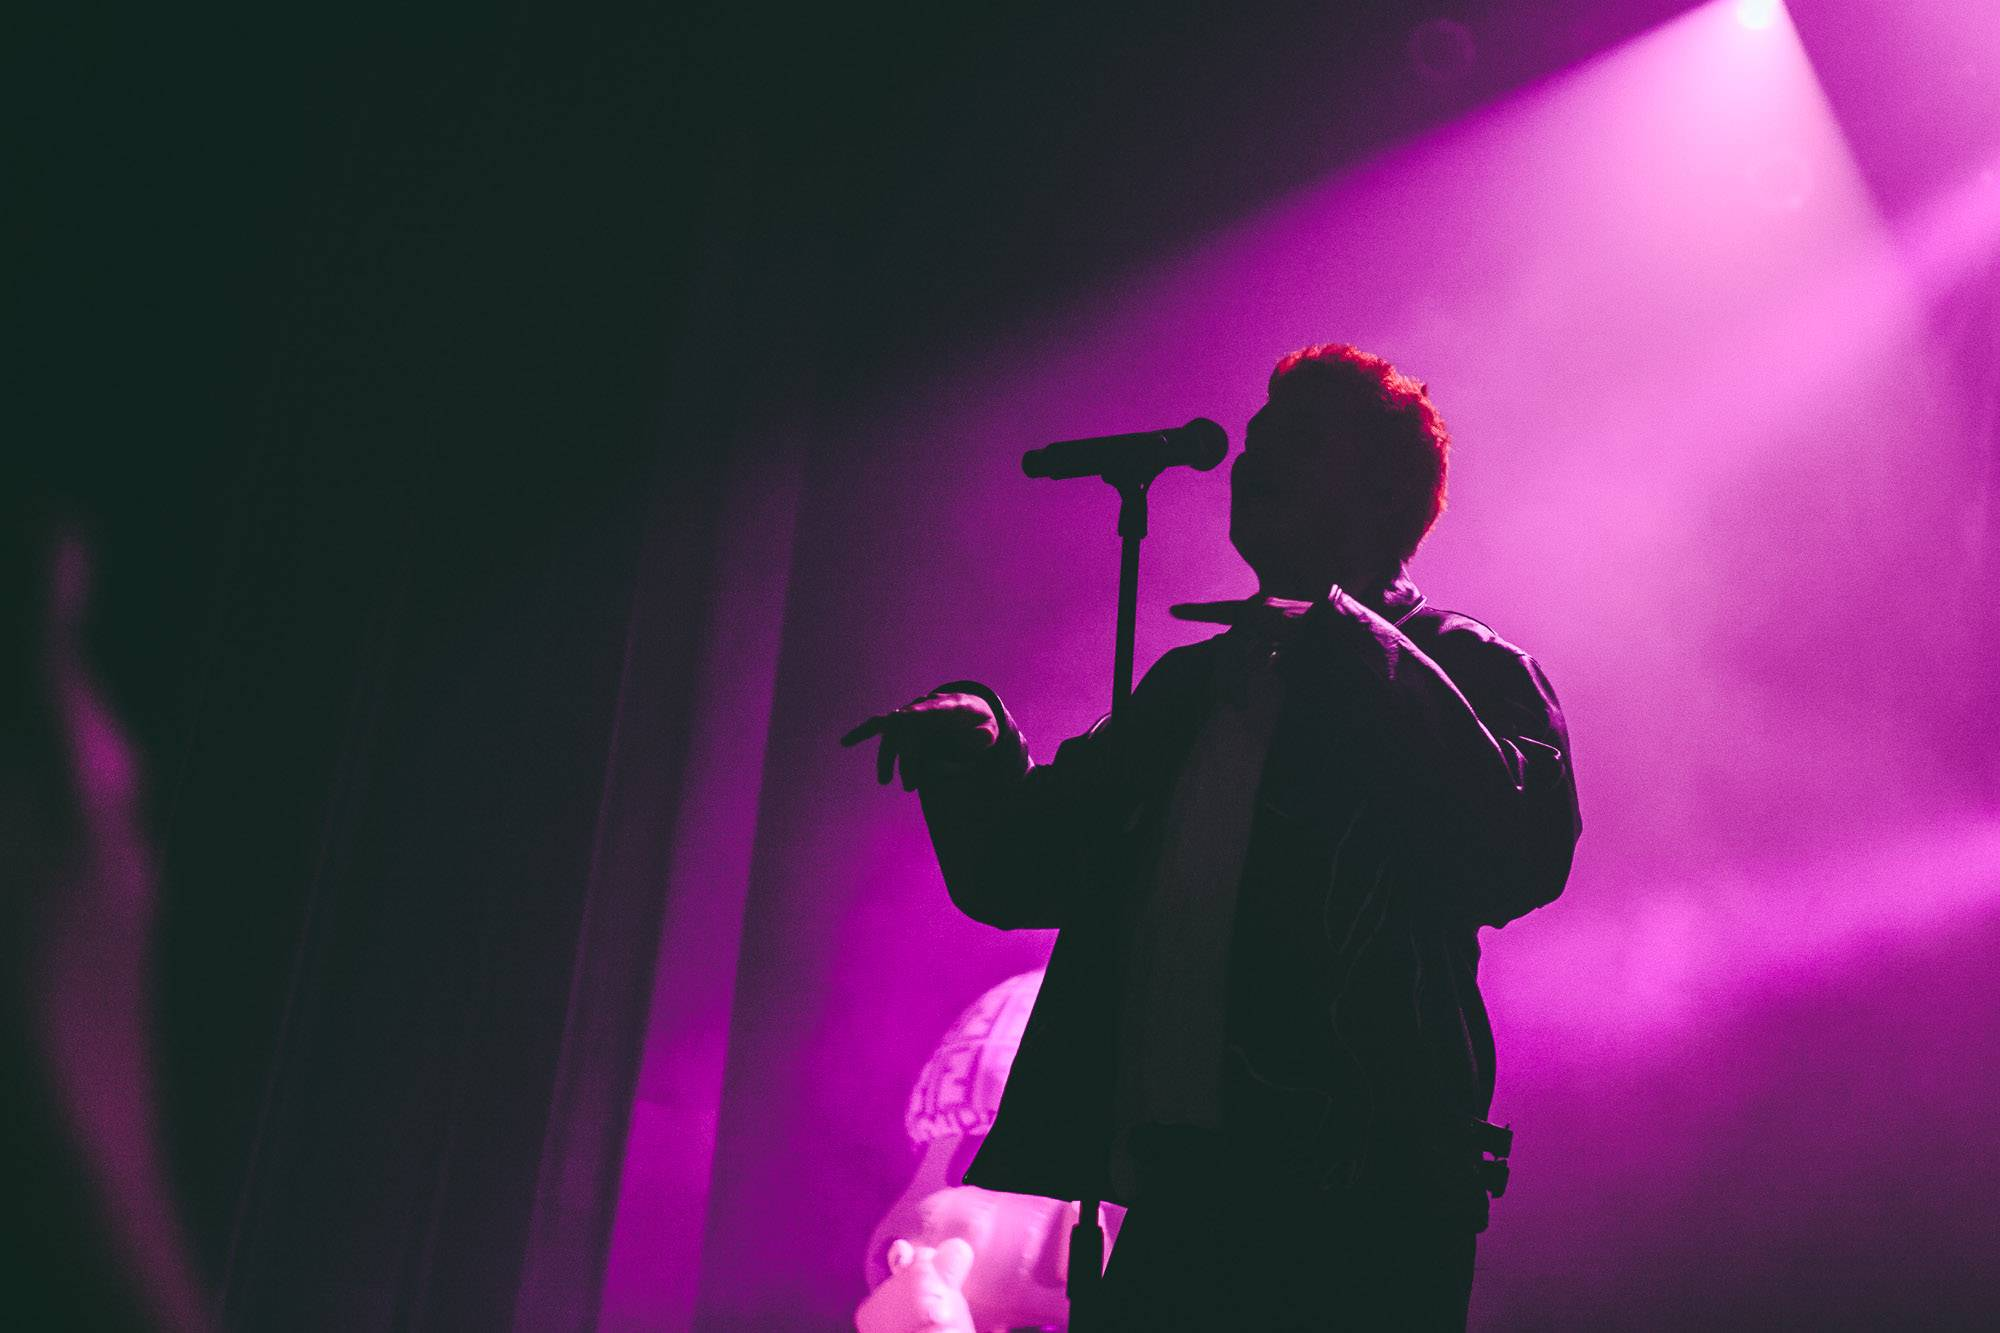 Yung Lean at the Vogue Theatre, Vancouver, Jan 24 2018. Kelli Anne photo.